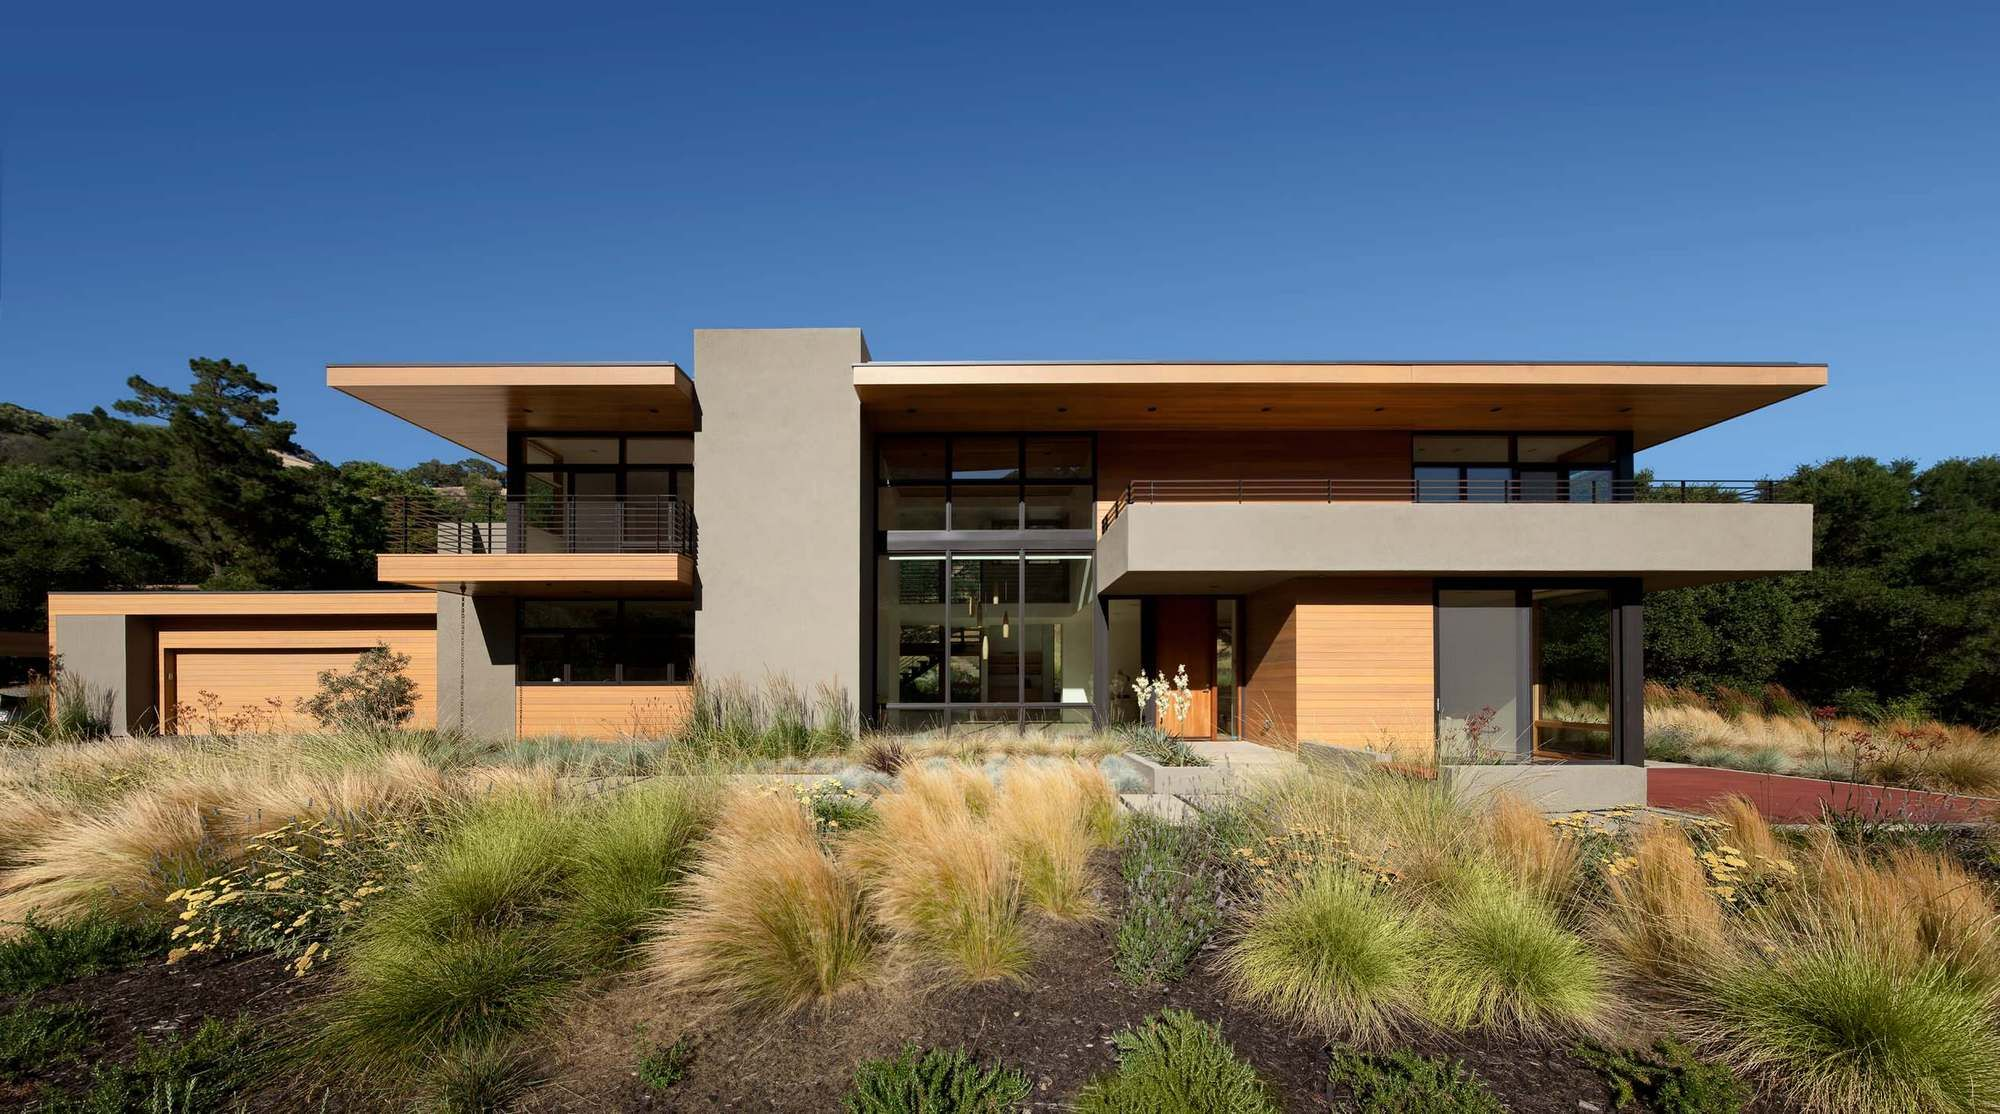 California Modern Architecture Image Result For California Countryside Homes Home